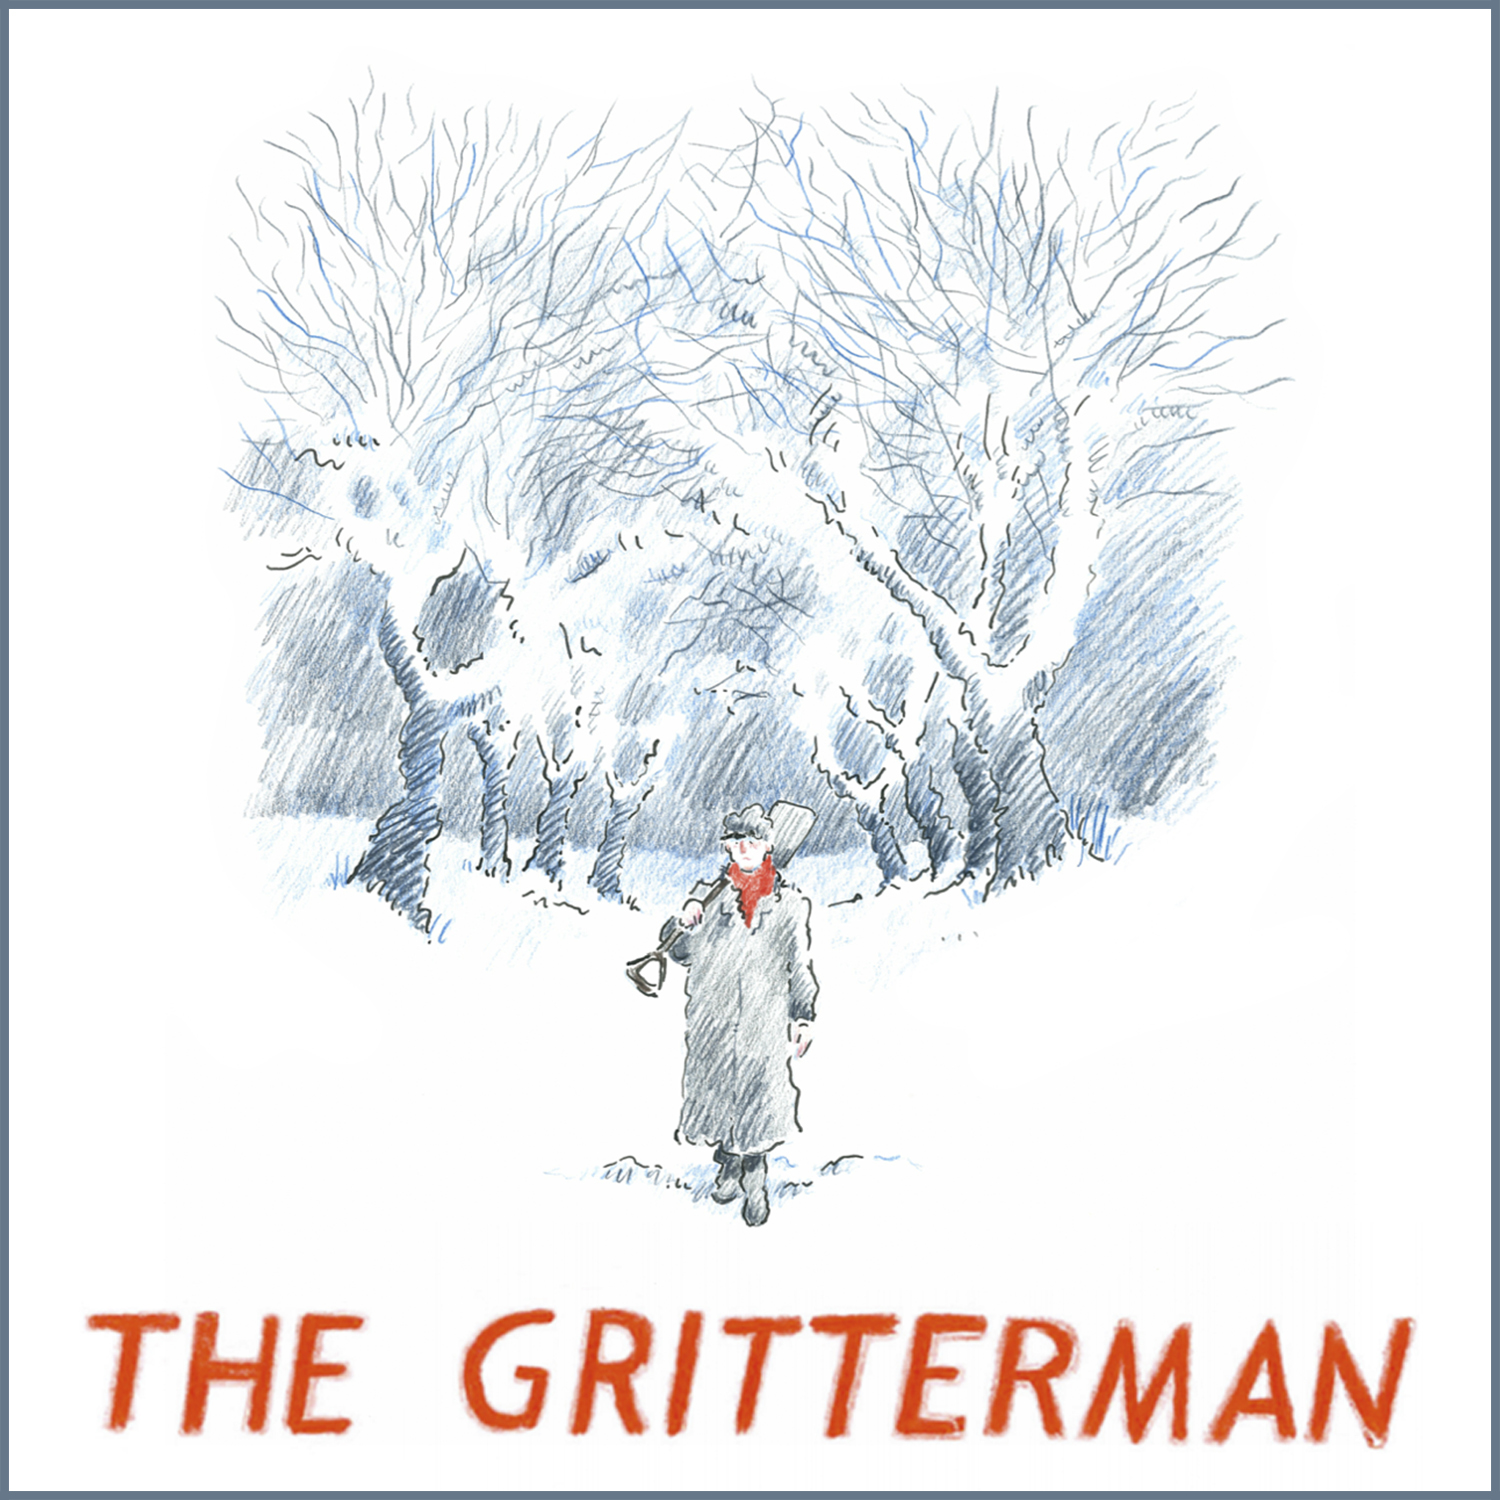 The Gritterman's companion album featuring new tracks by Orlando Weeks and ft. Paul Whitehouse as The Gritterman is available to listen to and download on all digital and streaming platforms.   CLICK HERE  TO STREAM / DOWNLOAD